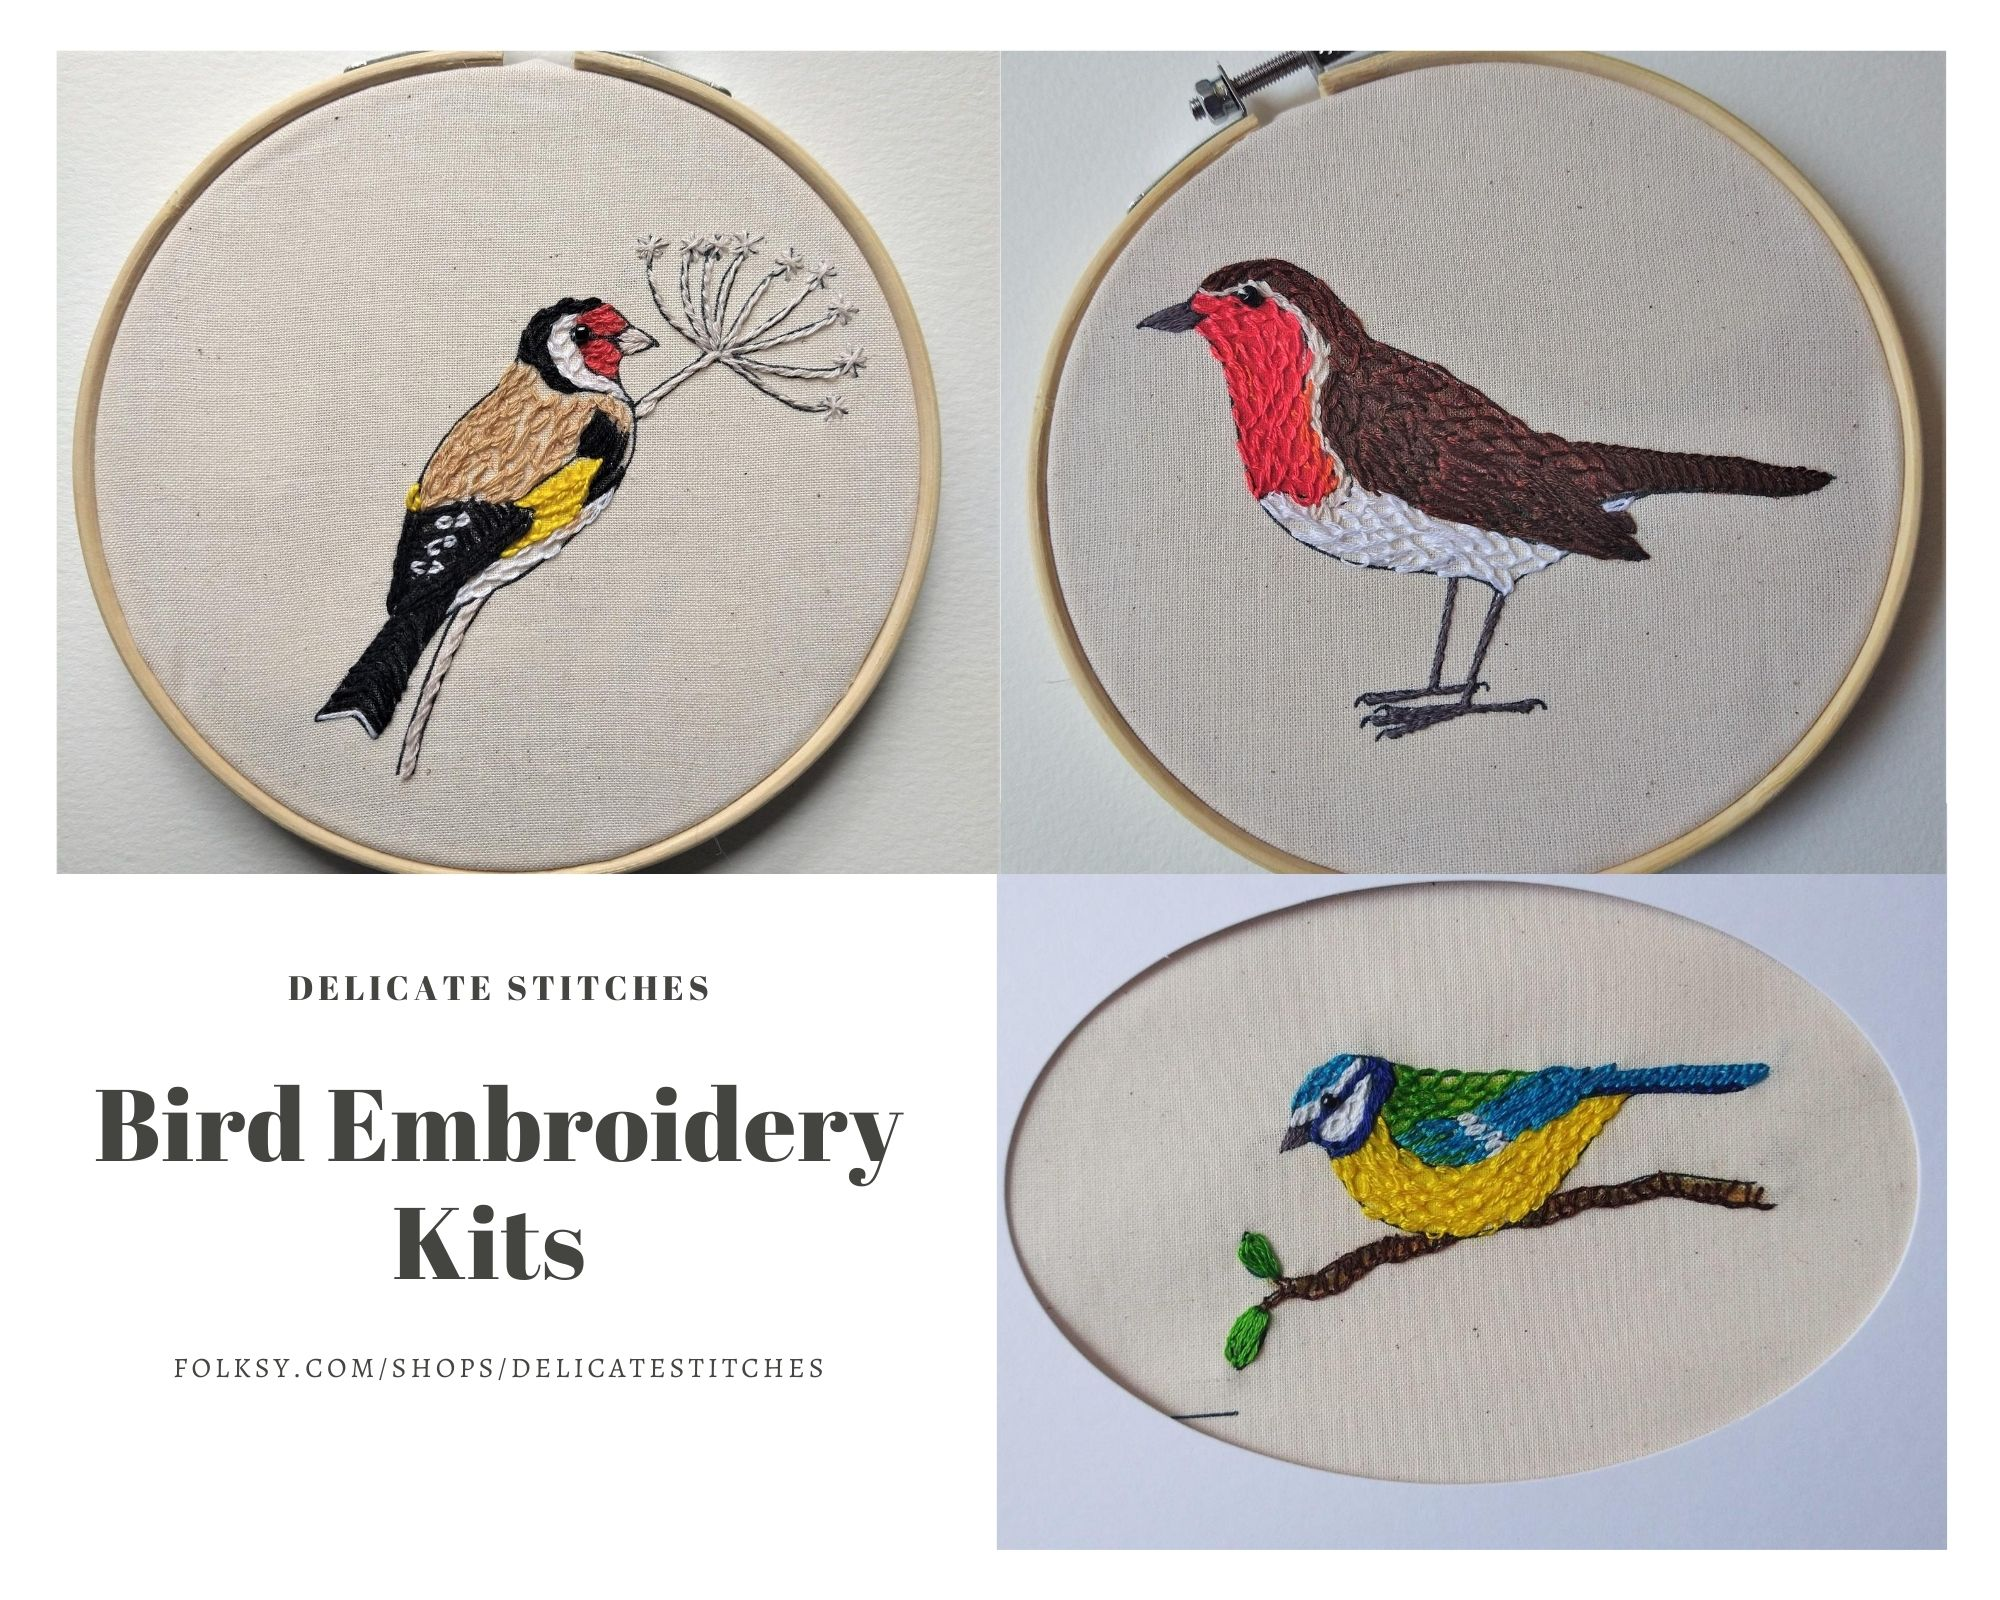 Bird Embroidery Kits